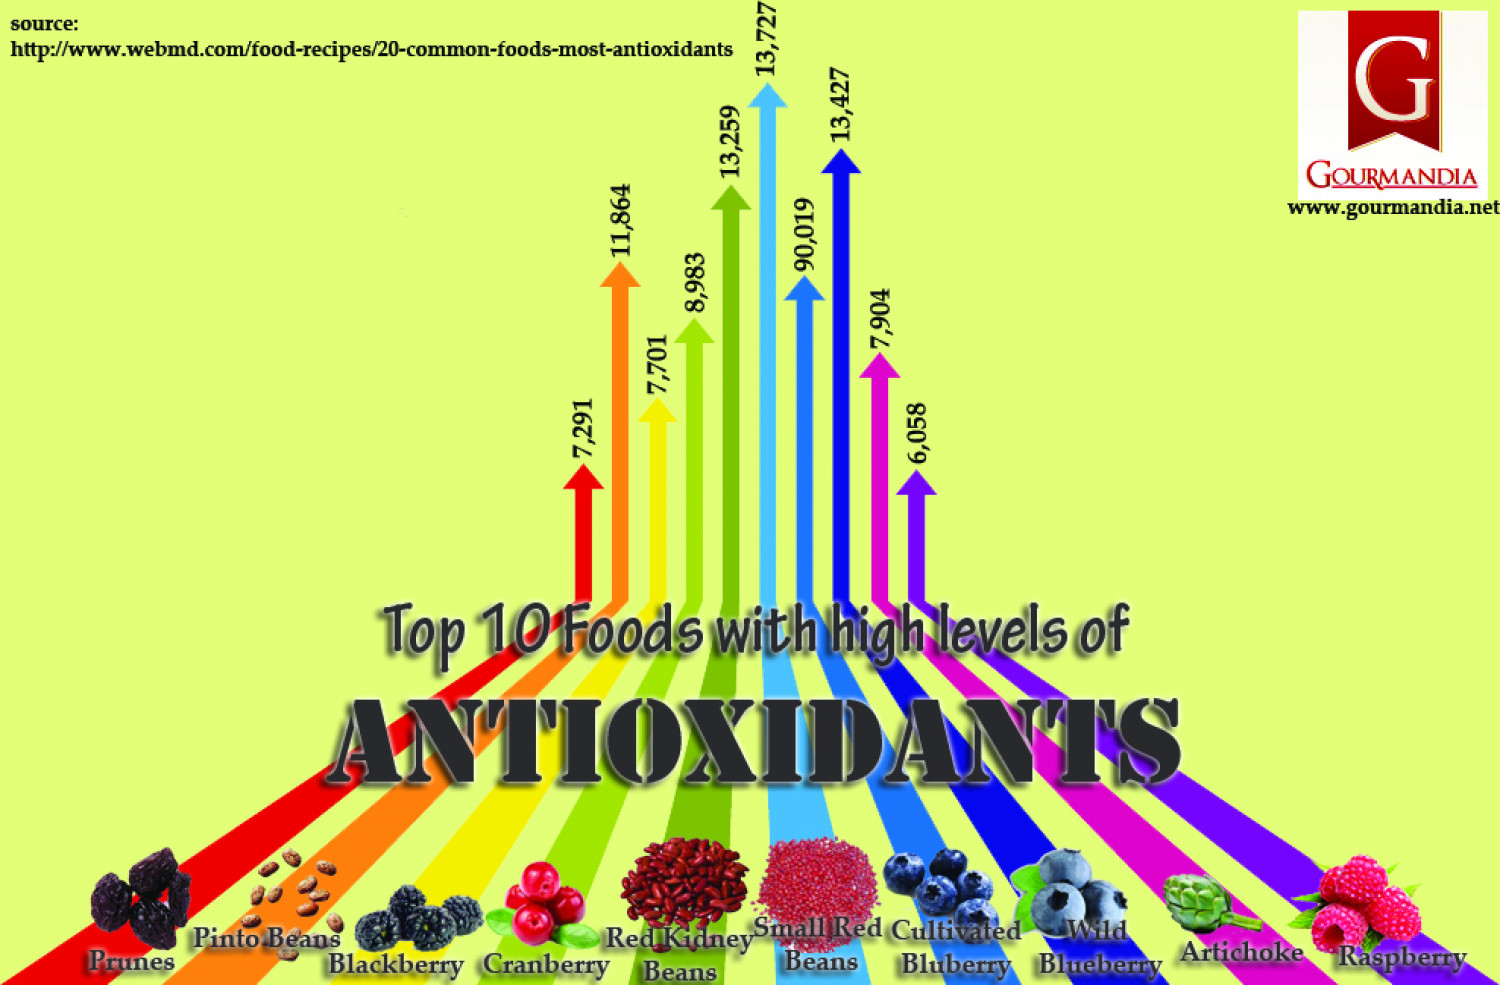 Top 10 Foods with High Levels of Antioxidants Infographic